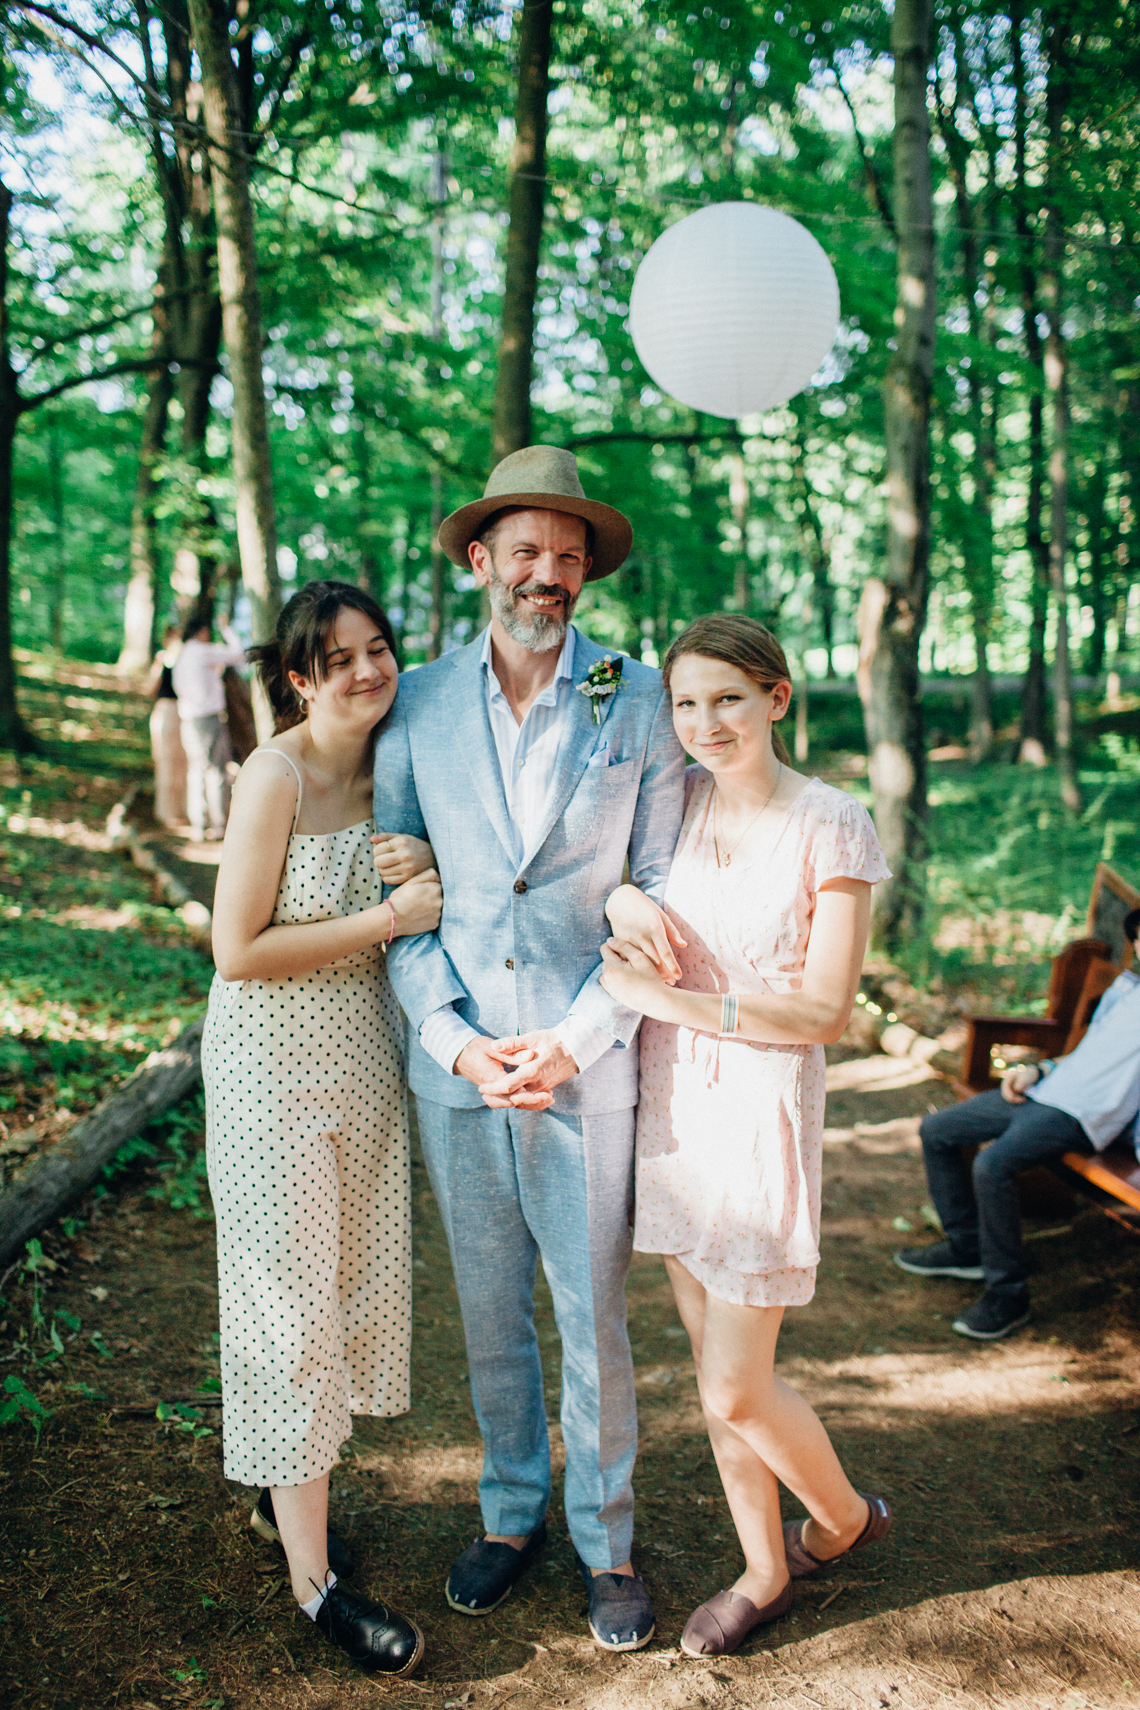 Adorable DIY Backyard Wedding in Upstate New York with a Rock and Roll Bride and Groom – Claire Eliza 33